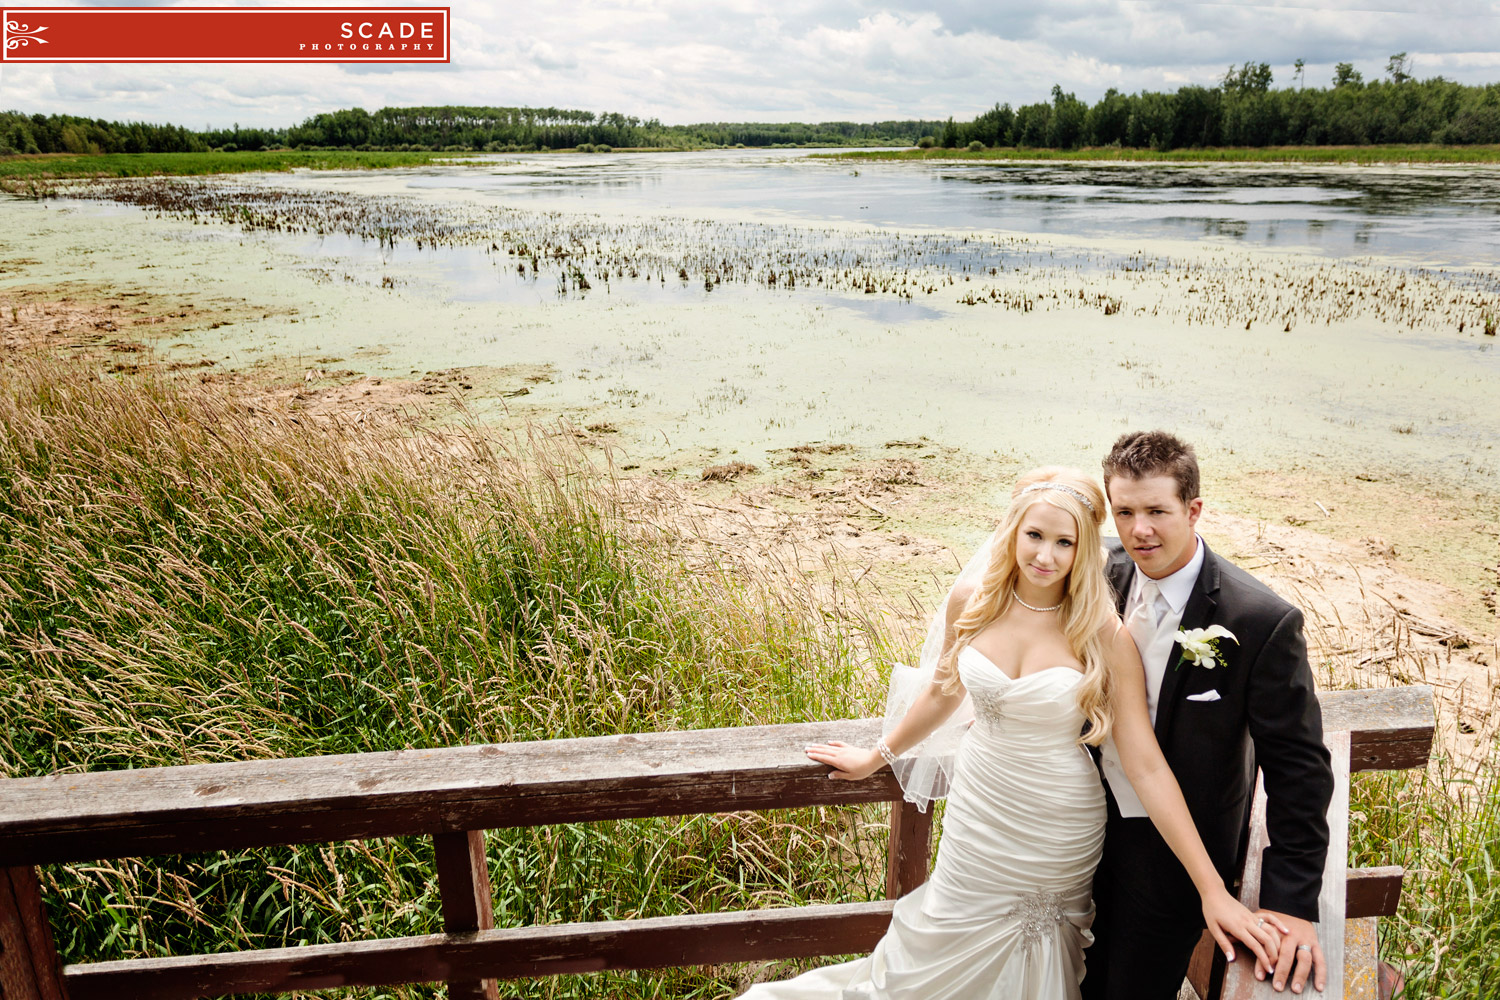 Lamont Wedding Photography - Brittney and Michael - 0022.JPG